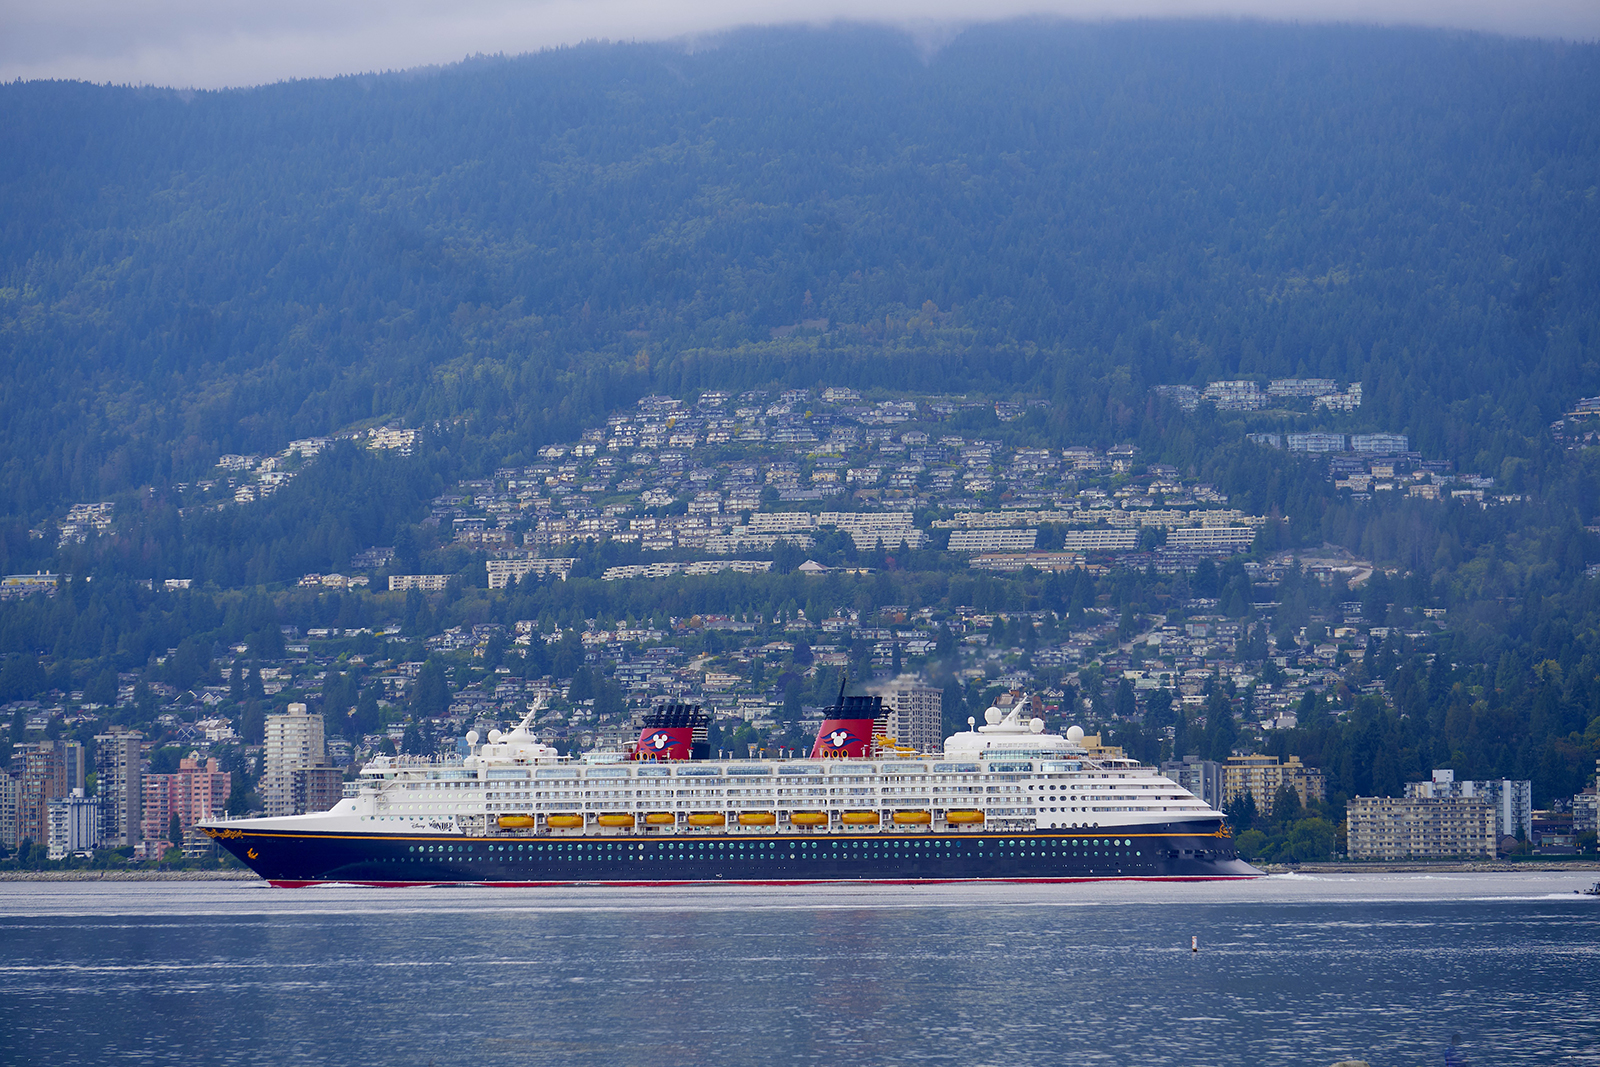 A Disney cruise liner leaves Vancouver Harbour in Canada, on September 14, 2019.